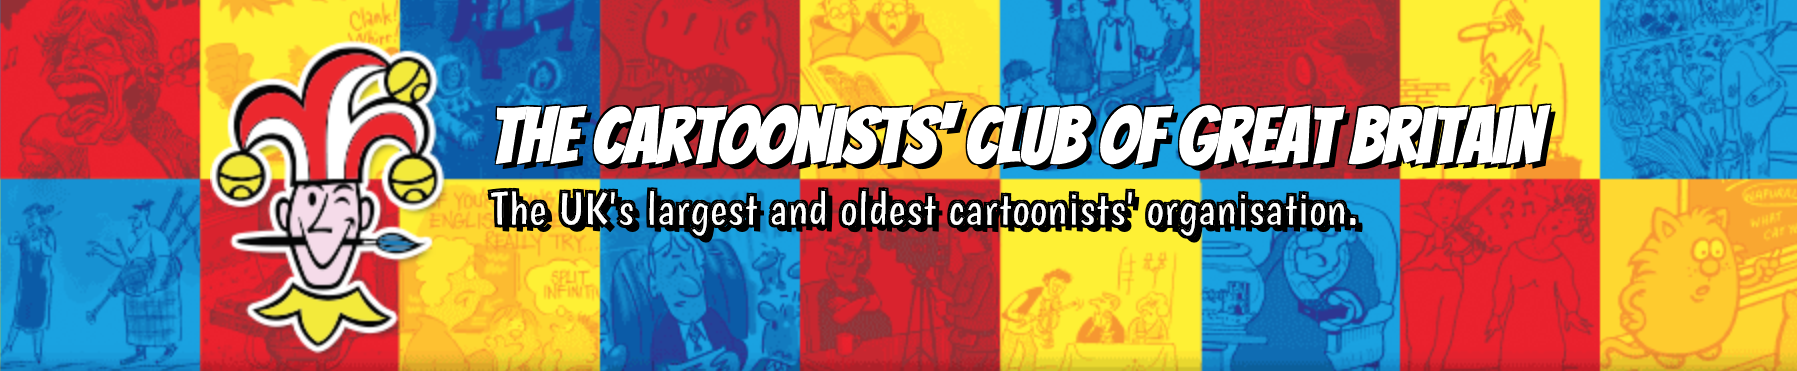 Cartoonists Club of Great Britain